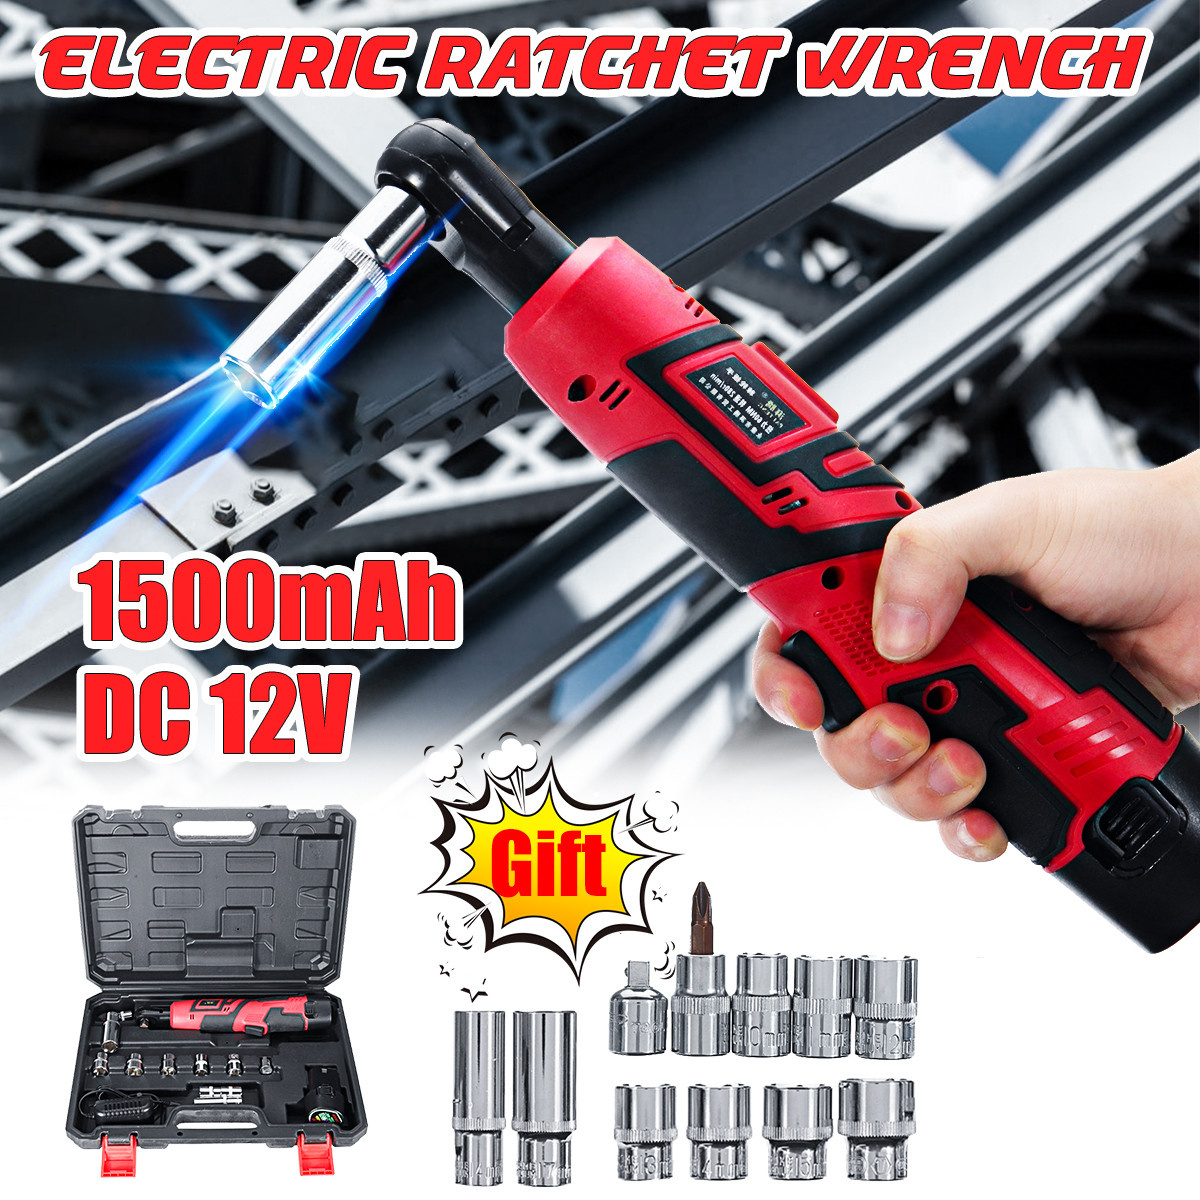 12V 3//8 Inch Electric Rechargeable Cordless LED Ratchet Wrench Rotary Tools Kit